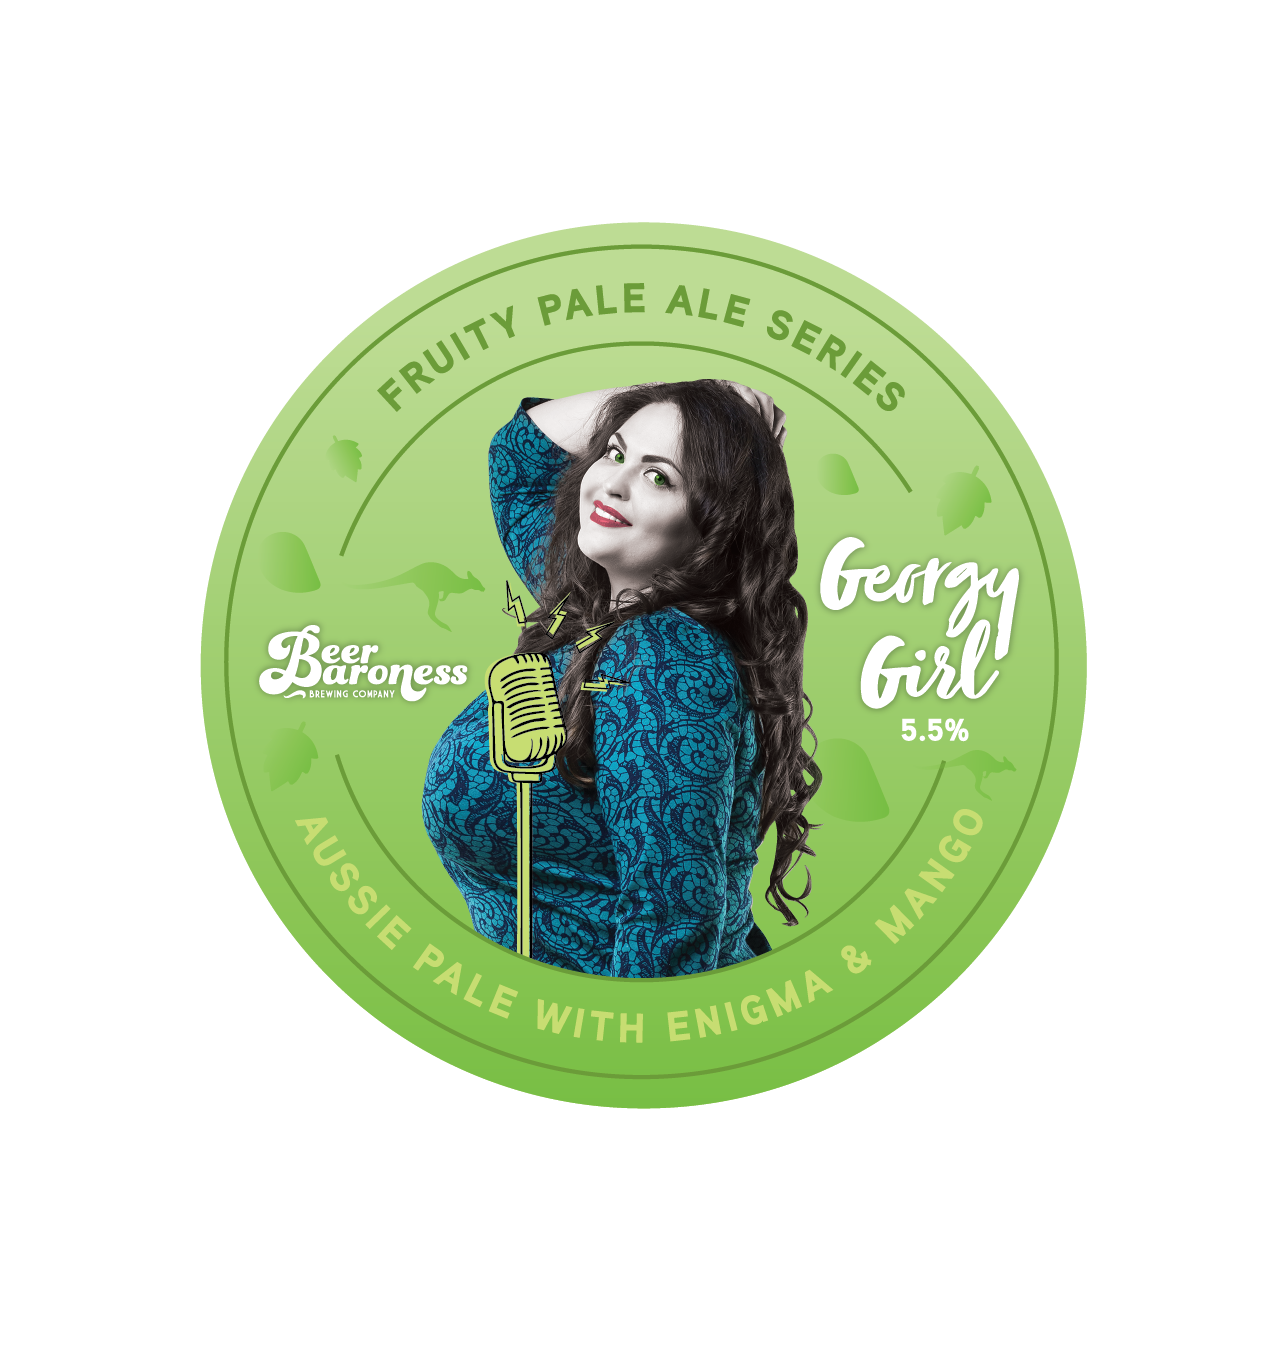 DD004554 Beer Baroness - Fruited Pale Ale Series Tap Badges Supply - Georgy Girl.png